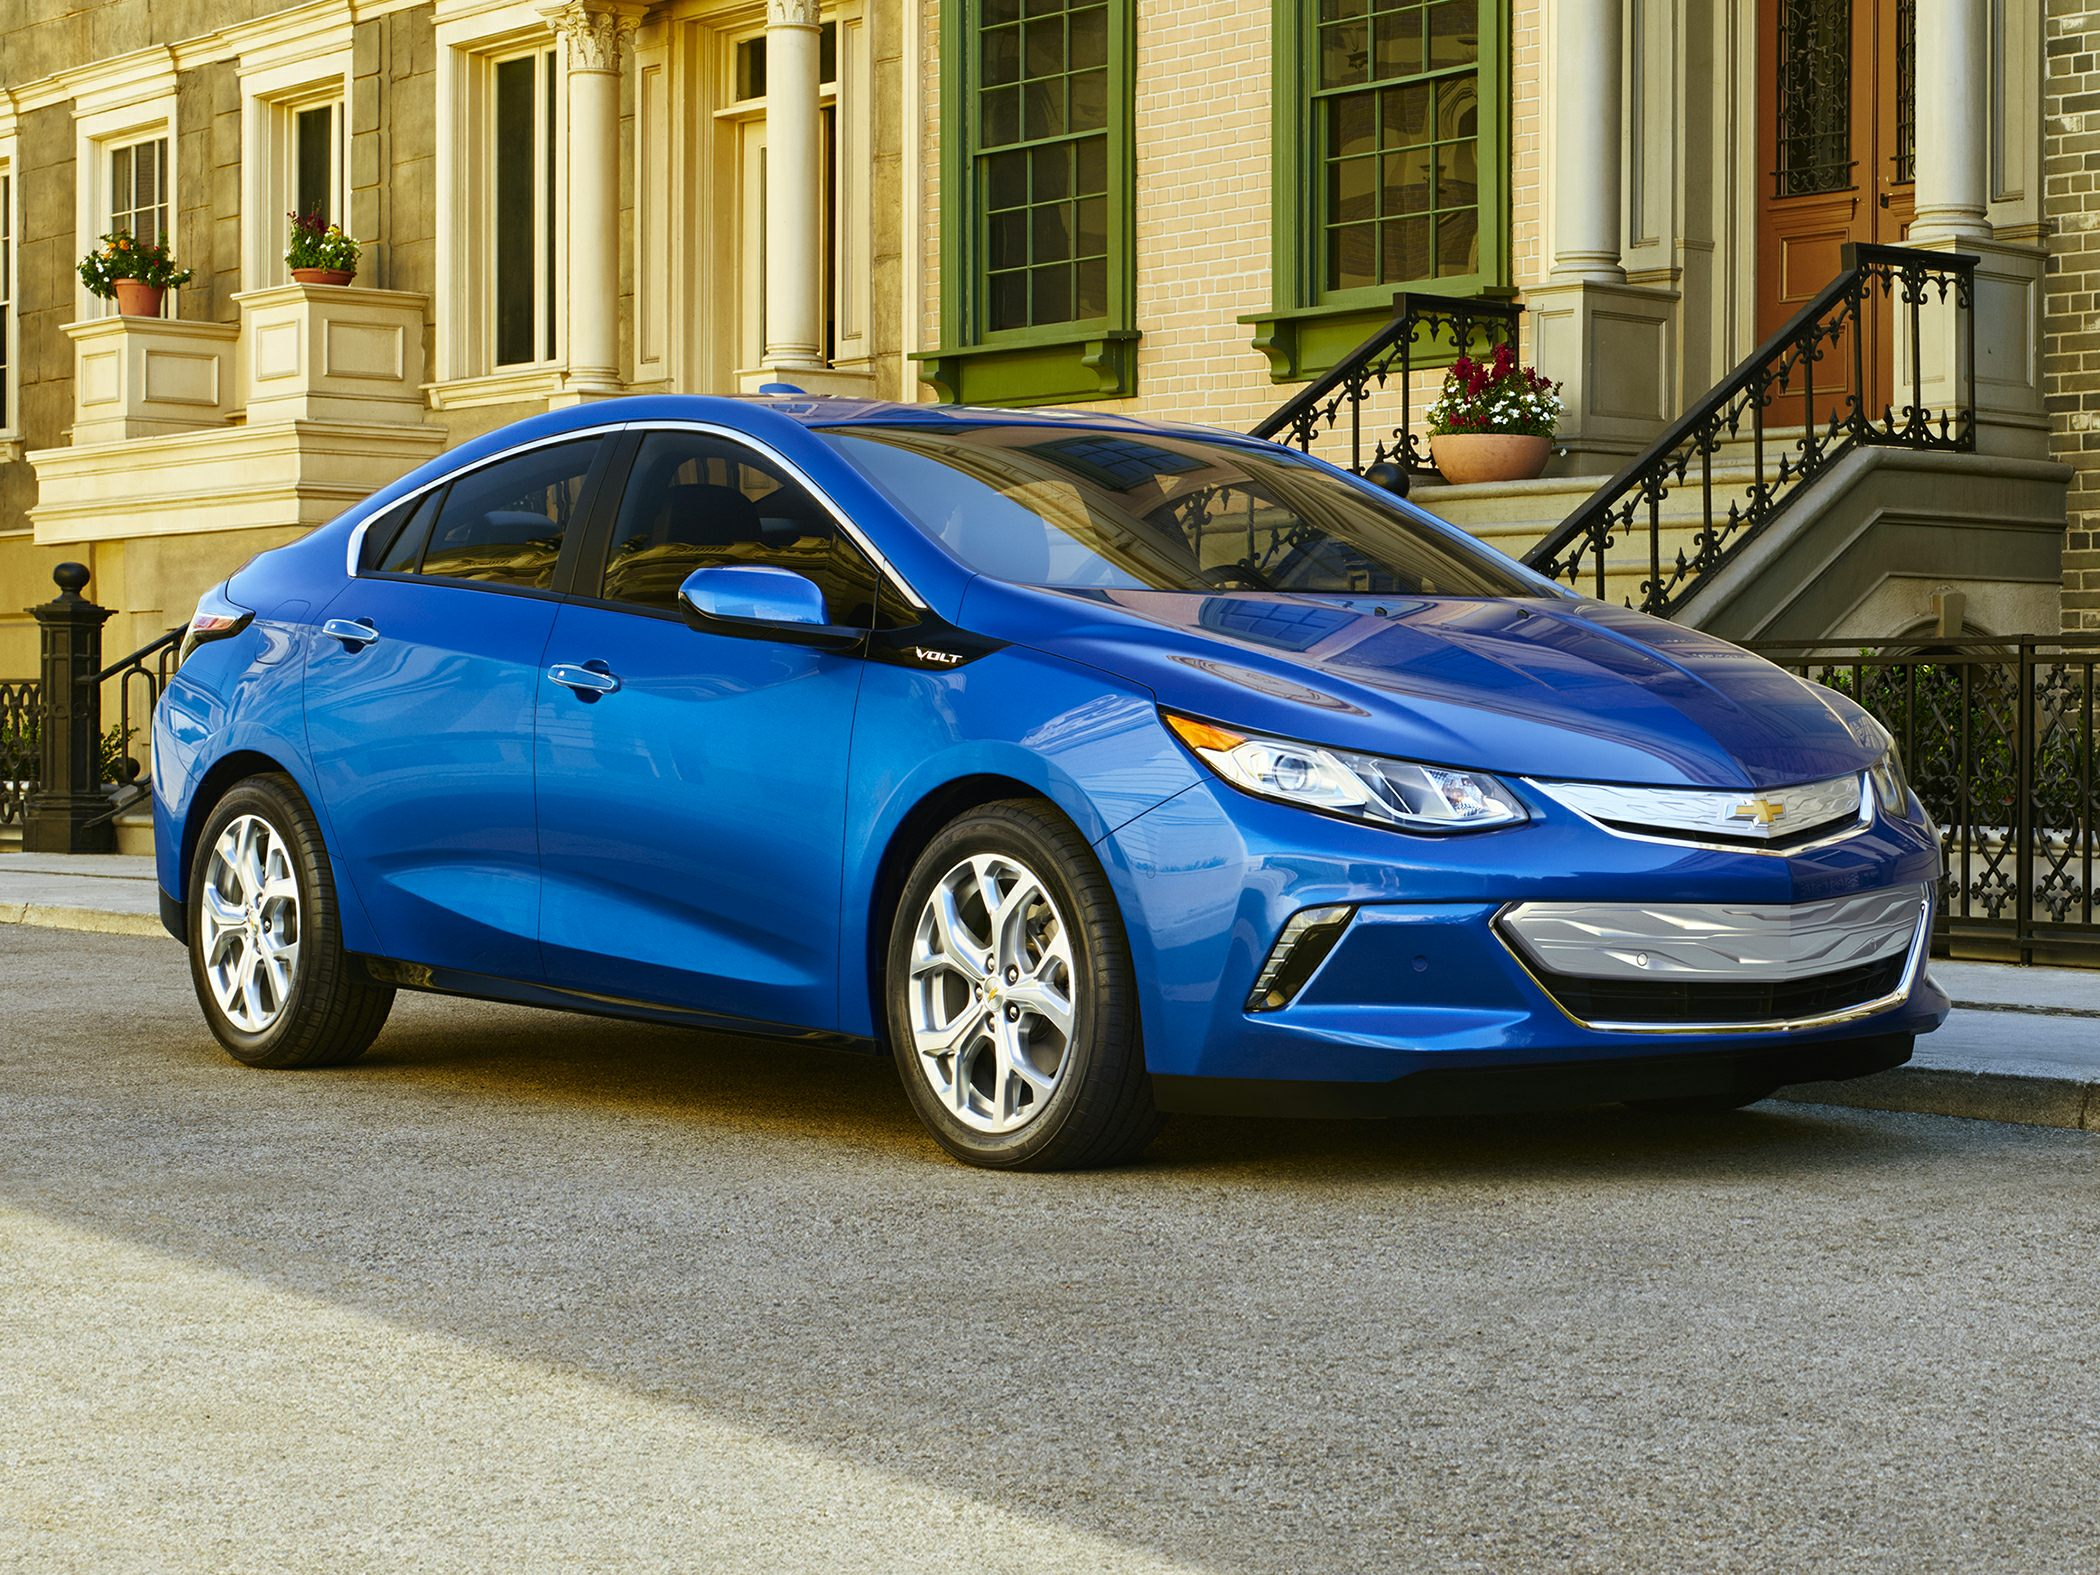 2018 Chevrolet Volt Deals, Prices, Incentives & Leases, Overview ...